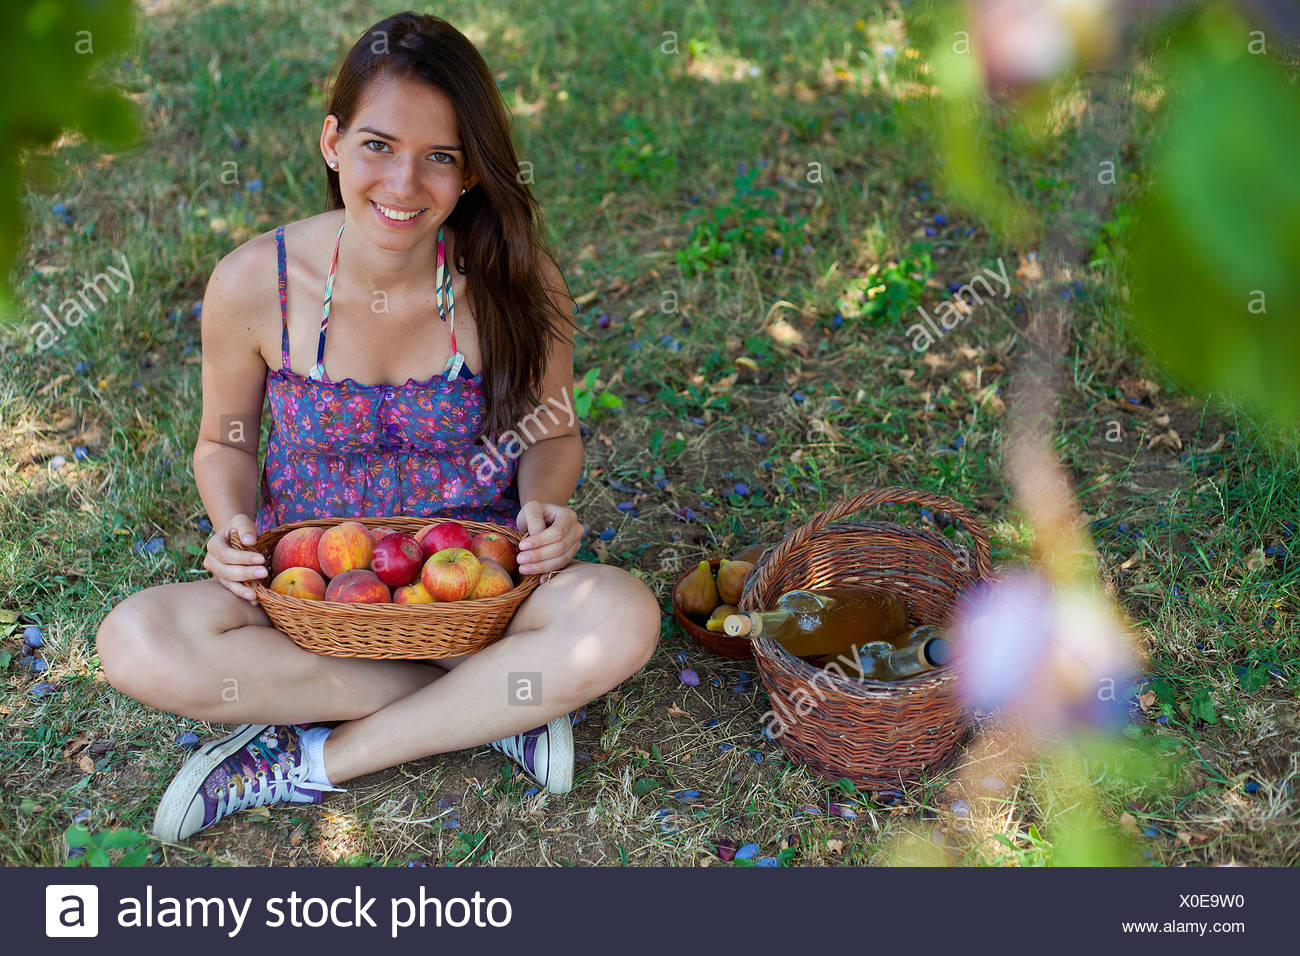 Smiling woman picnicking in orchard - Stock Image